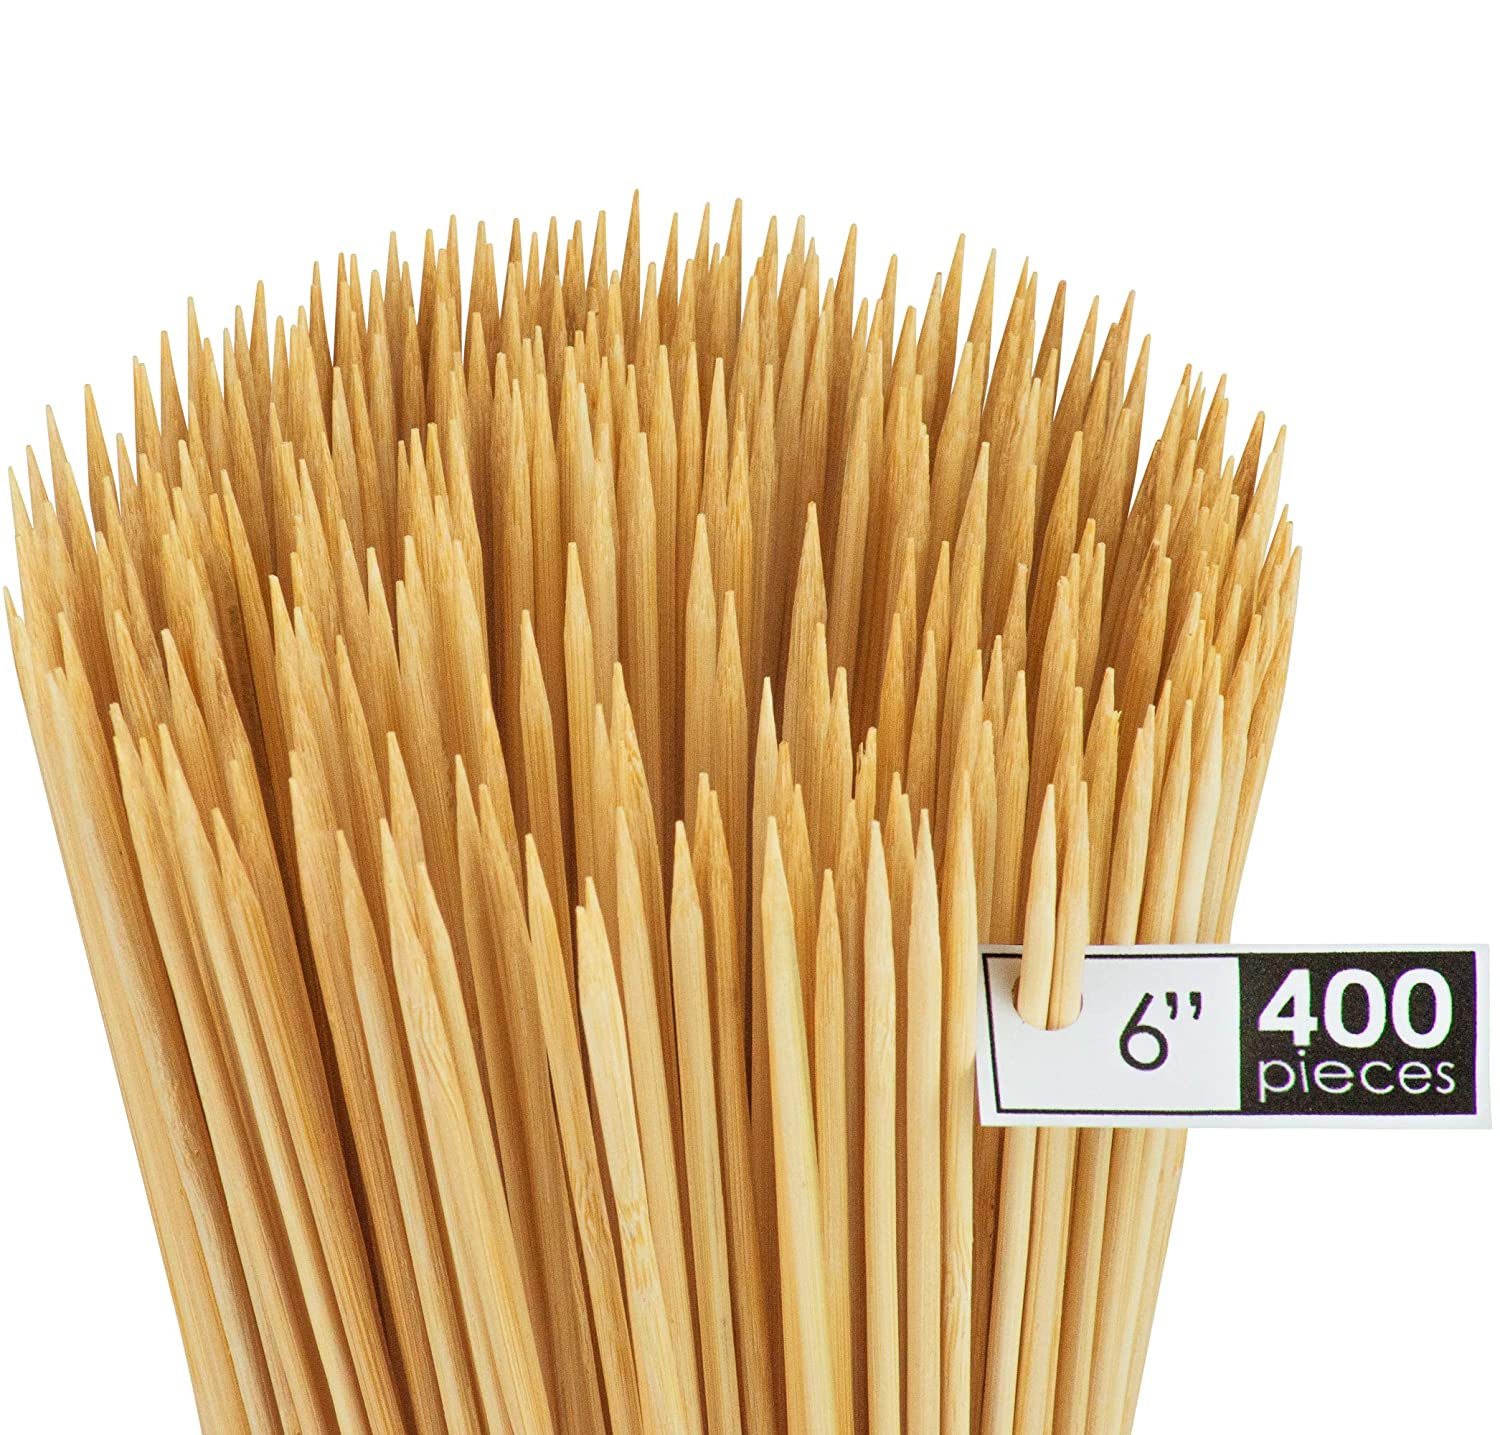 DecorRack 400 Natural 6 inch Bamboo Skewer Sticks, Natural Wooden Barbecue Shish Kabob Skewers, Best for Grill, BBQ, Kebab, Marshmallow Roasting or Fruit Sticks (Pack of 400)